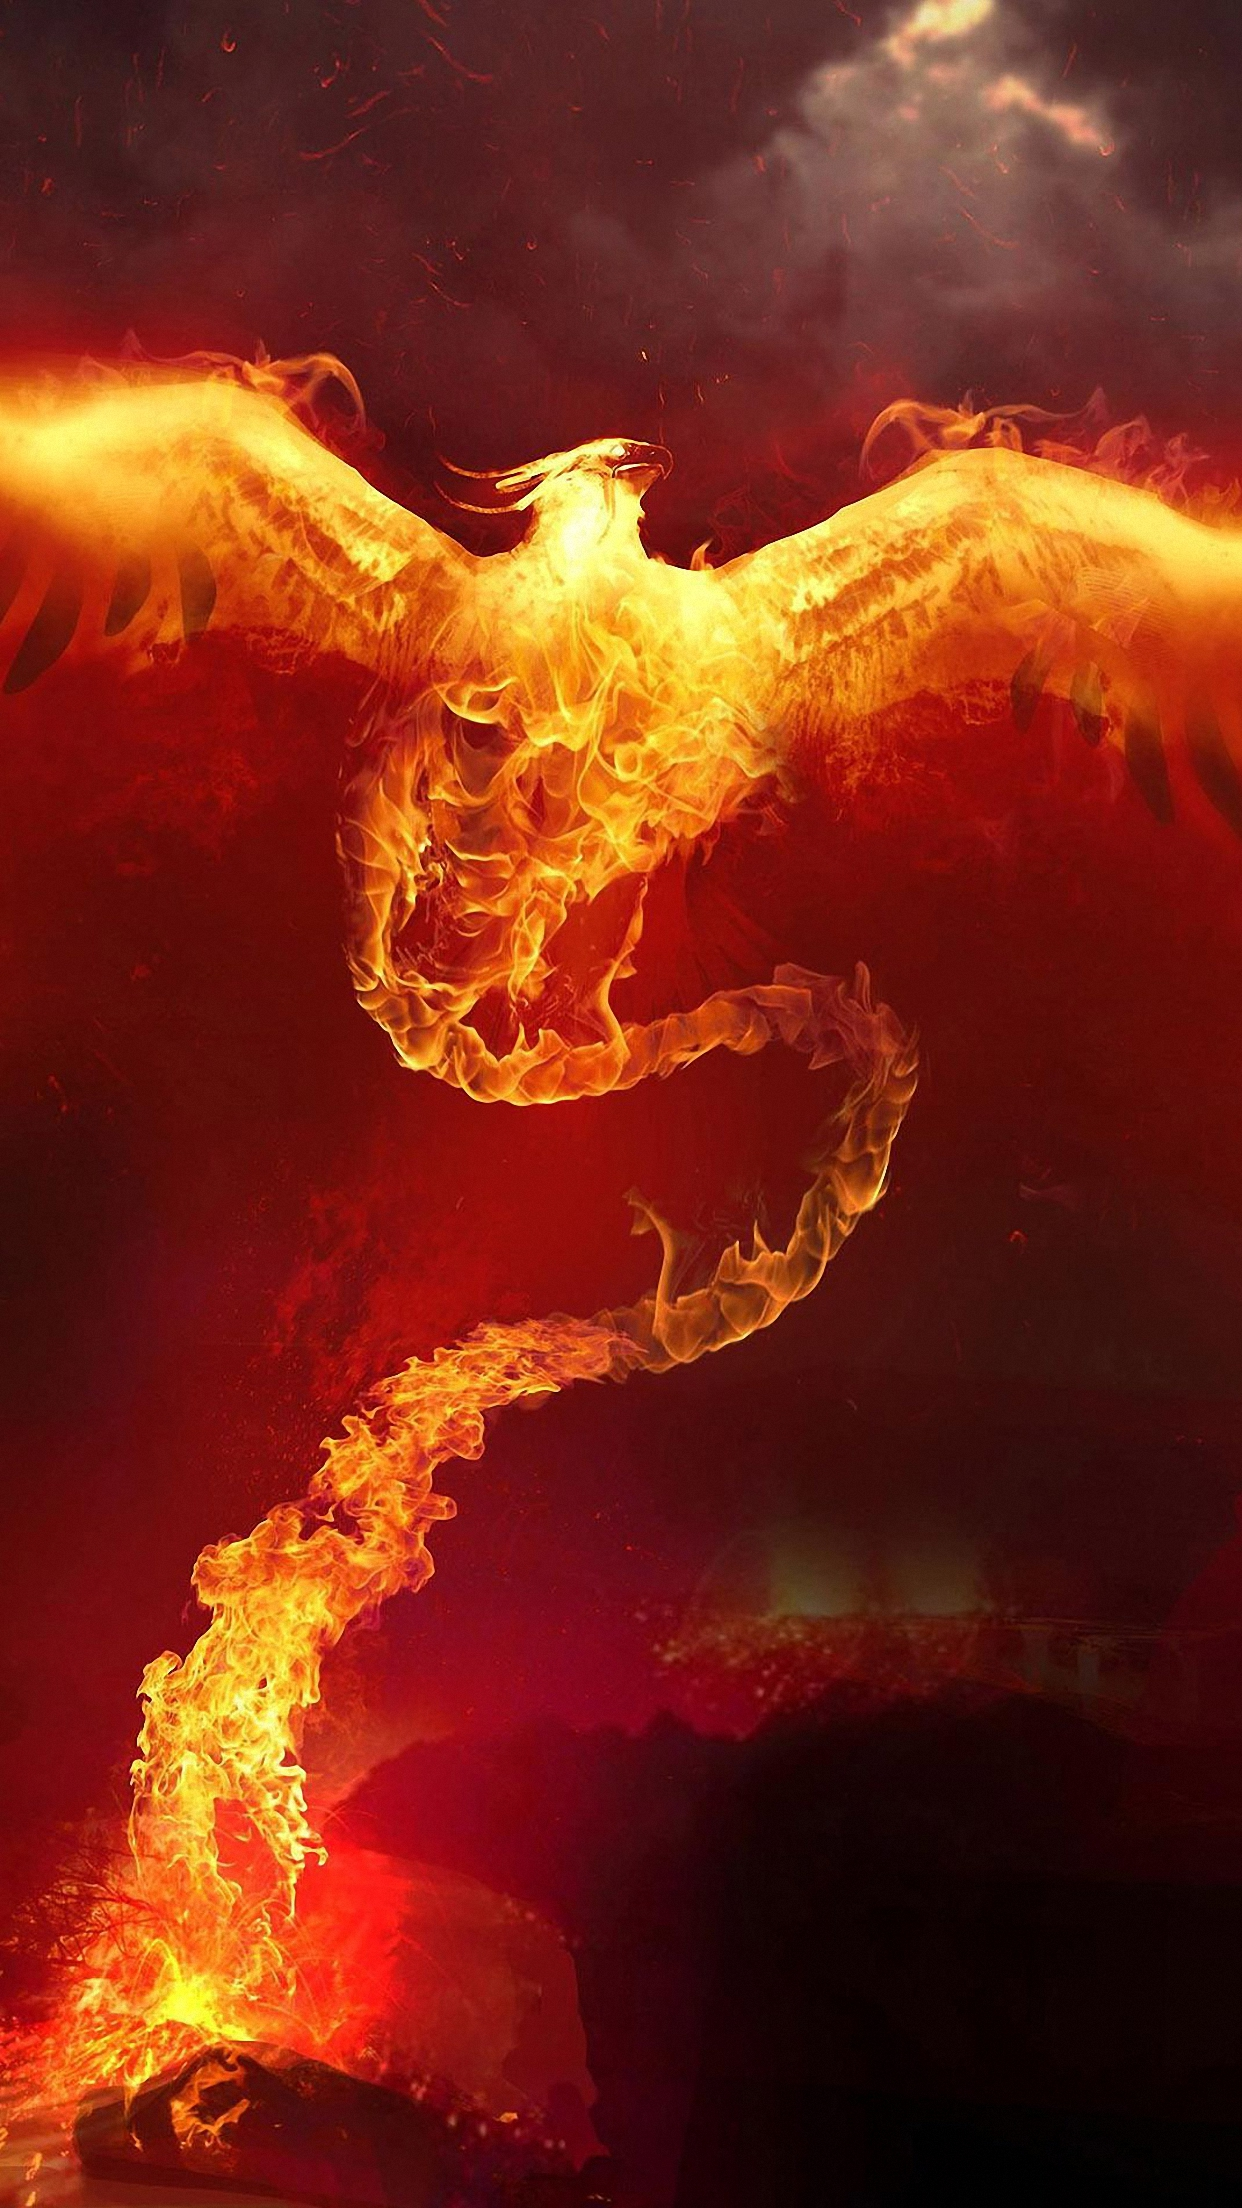 phoenix fire wallpaper for iphone x 8 7 6 free